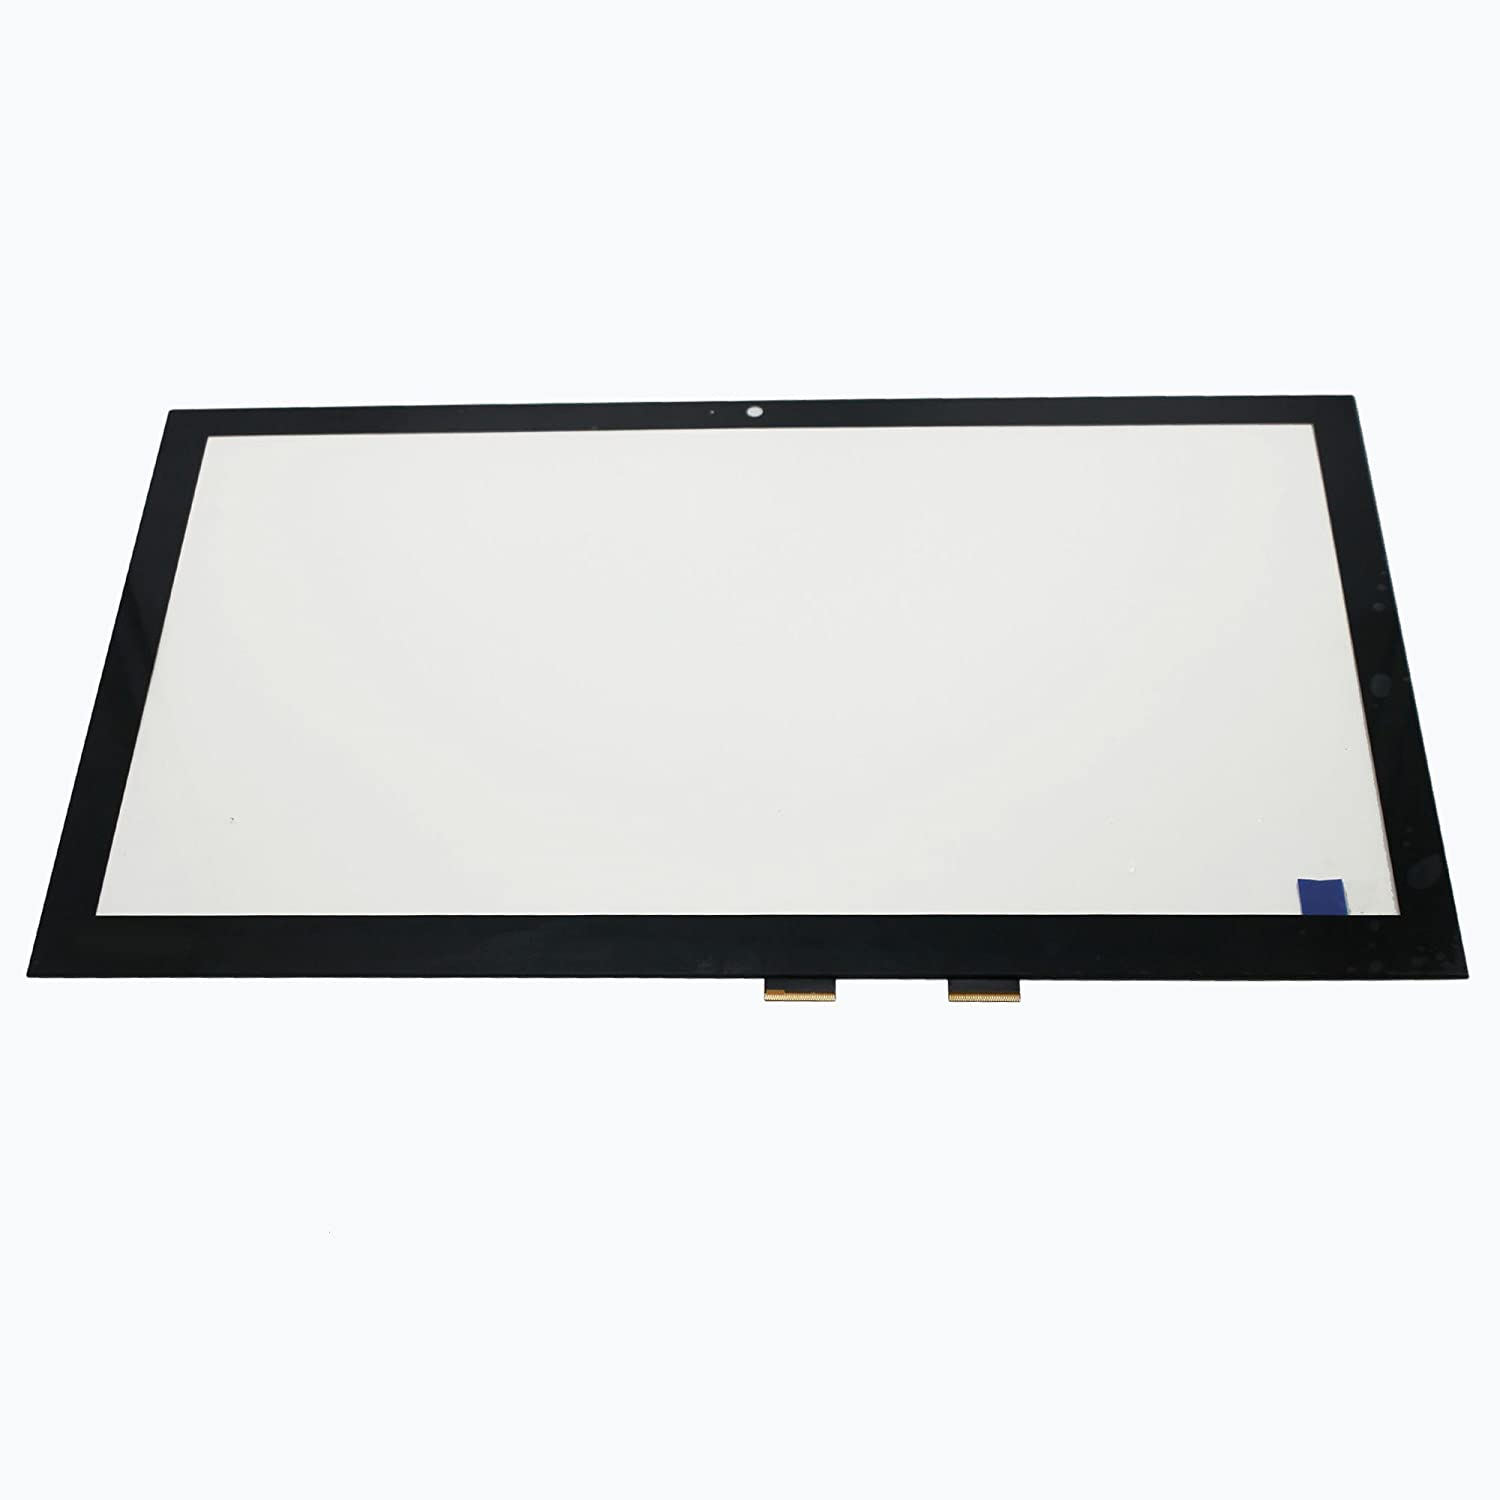 "LCDOLED 15.6"" Touch Screen Glass+Digitizer Replacement for Toshiba Satellite P55W-C5204 P55W-C5200D P55W-C5316"